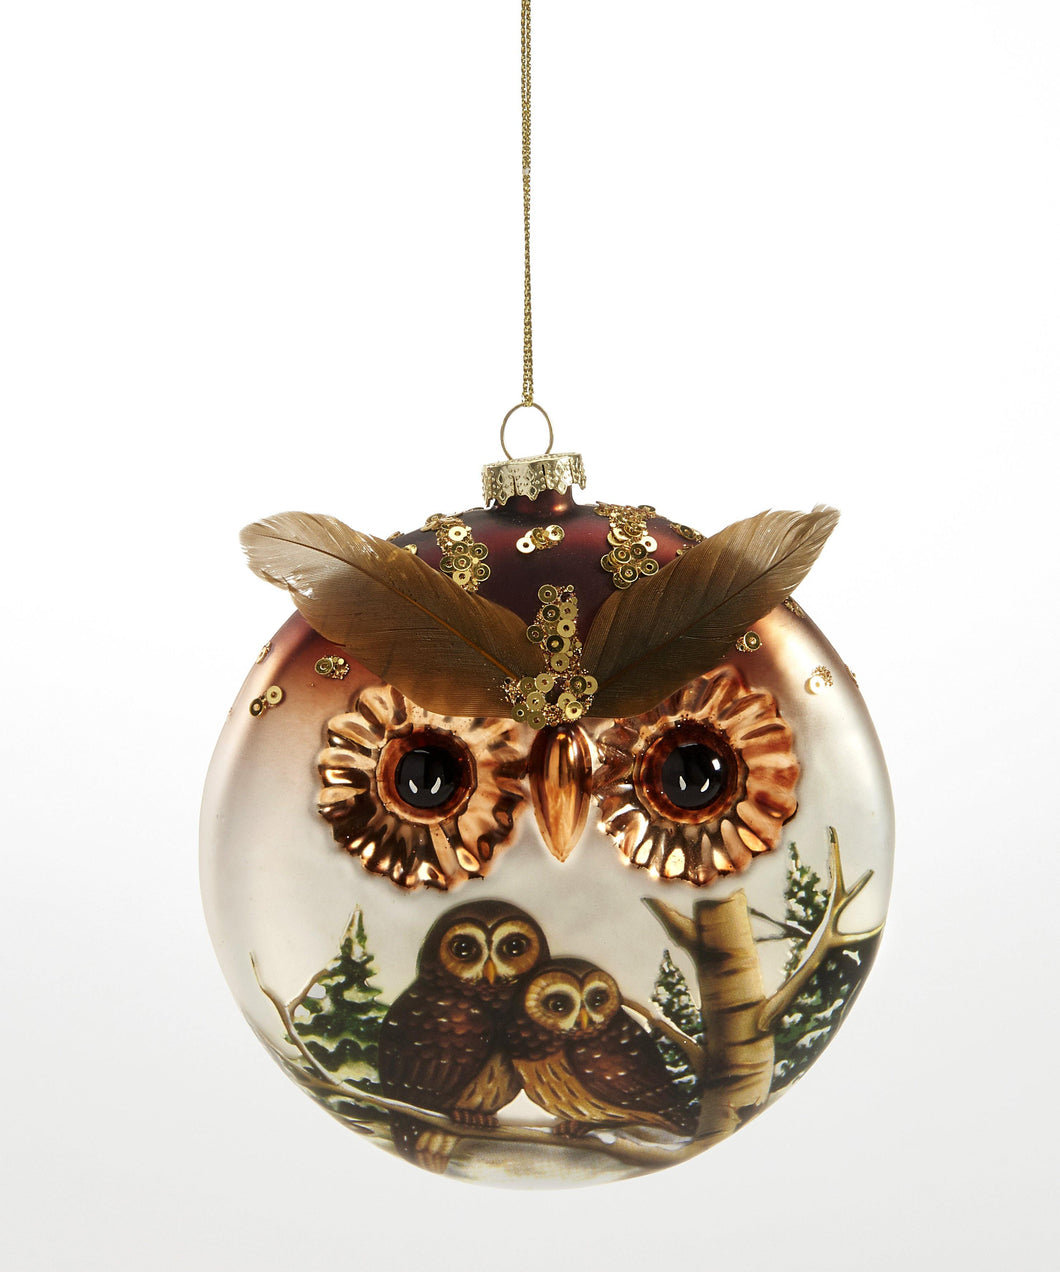 Glass Ornament, Owl Face